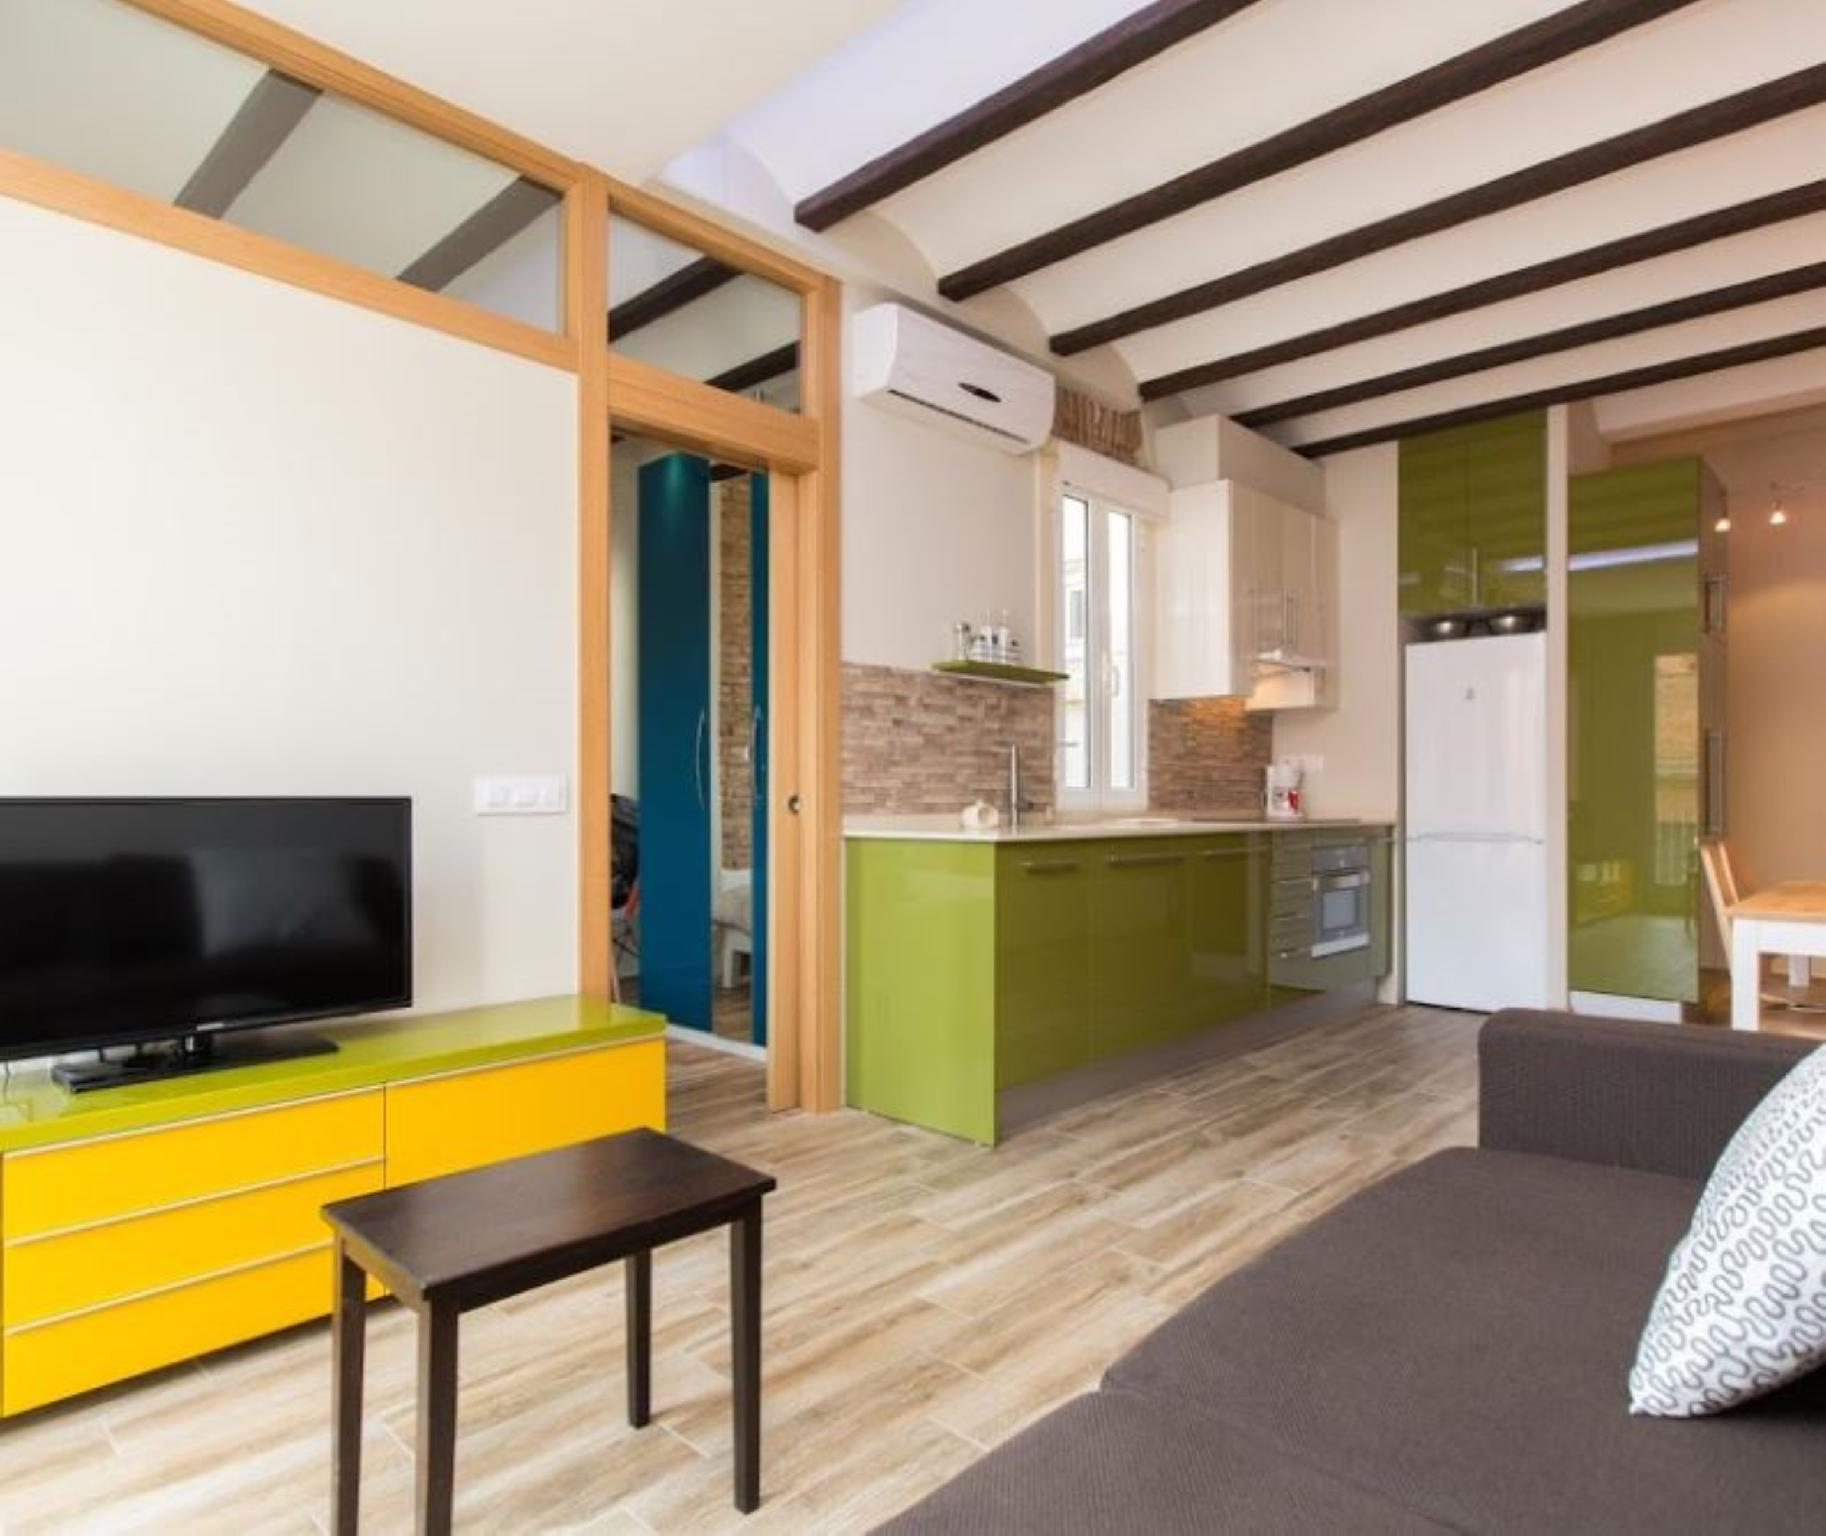 106682   Apartment In Barcelona